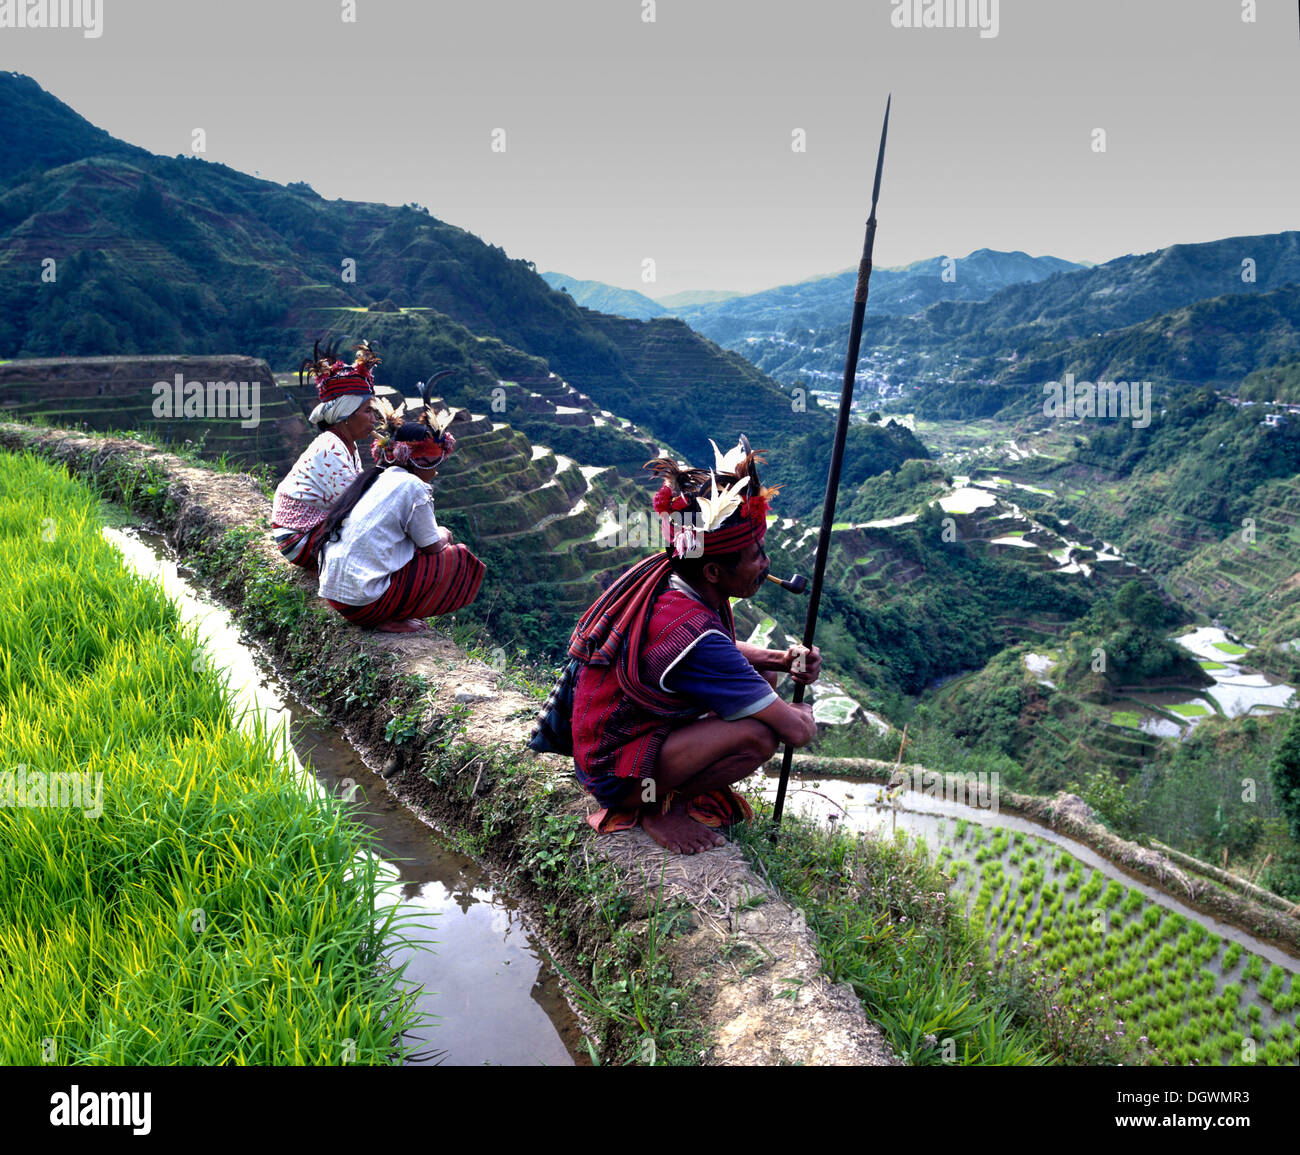 Ifugao people, members of an ethnic group wearing traditional costumes, Banaue Rice Terraces, also known as musuan - Stock Image